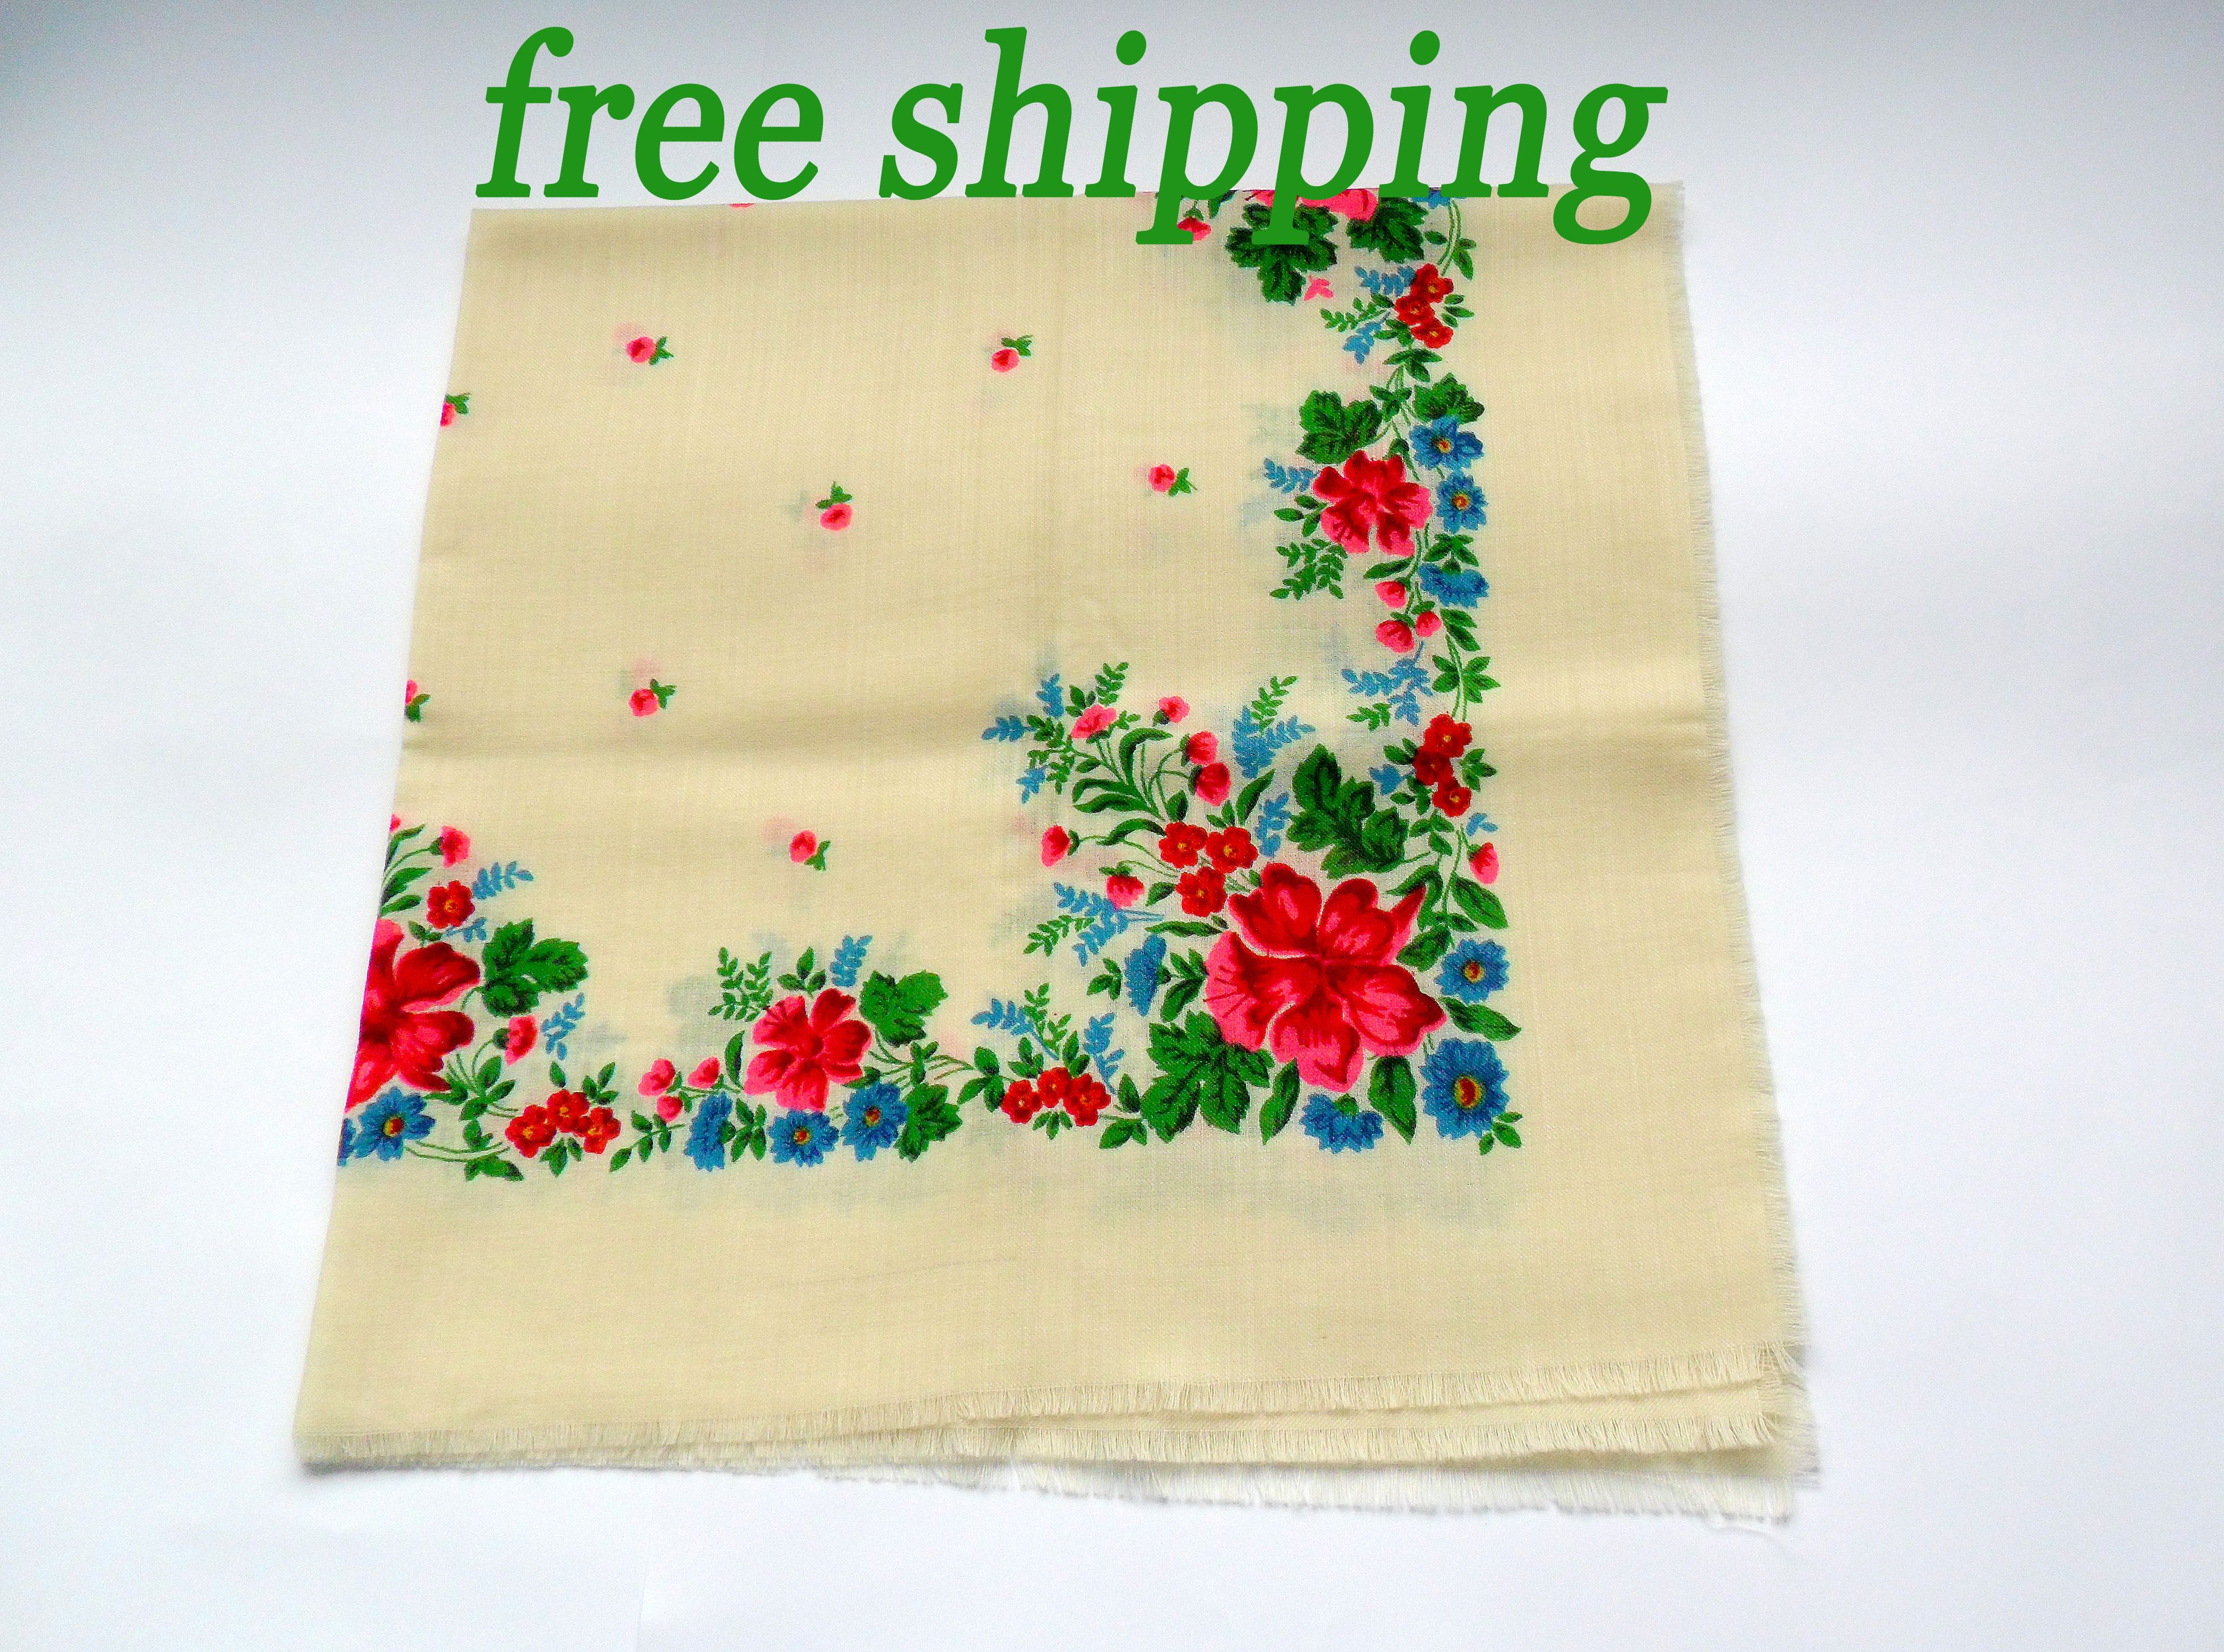 Shawl can also be used for home decor, as tablecloth or wall decor ...